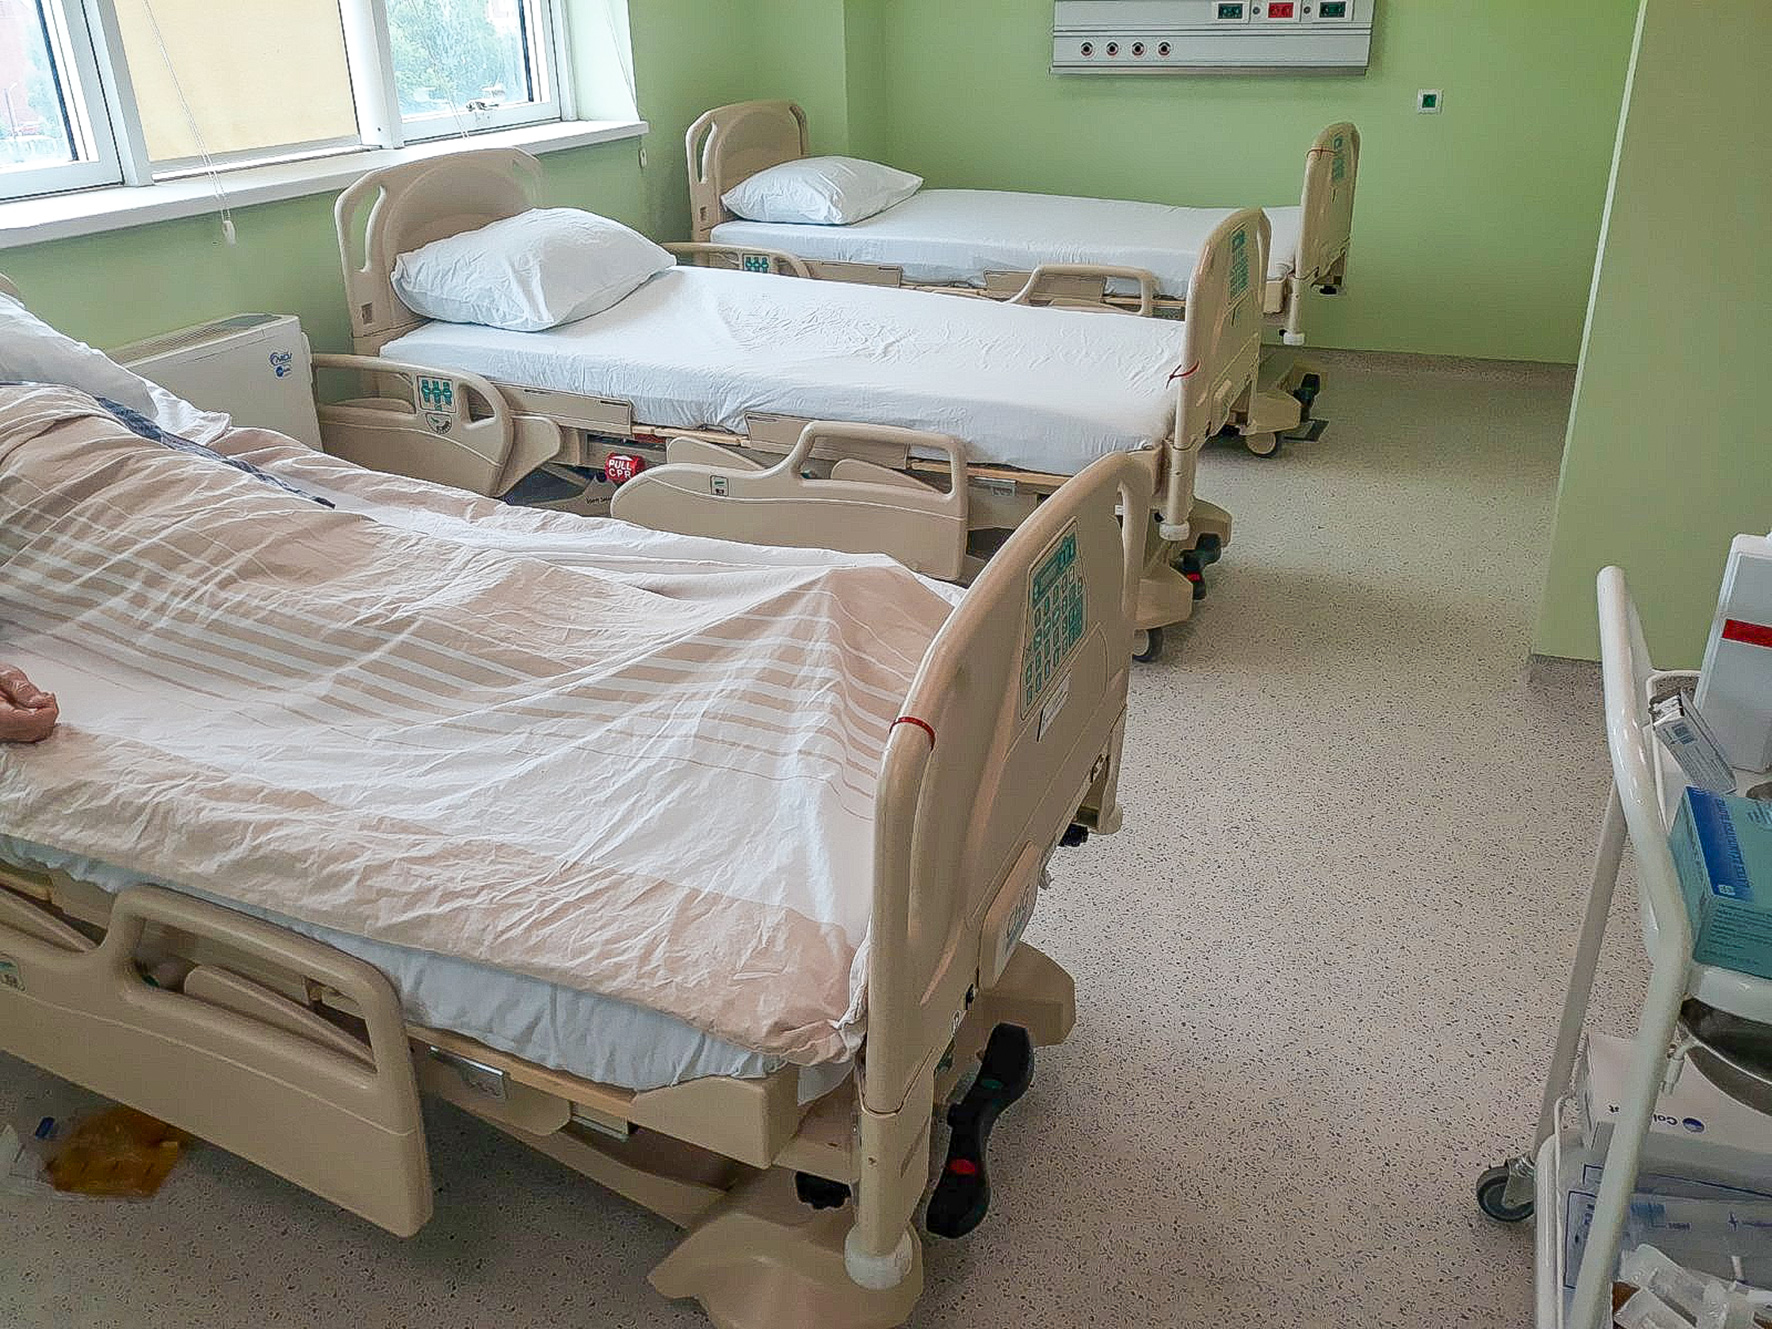 PRINCESS KATHERINE FOUNDATION DONATES ELECTRIC BEDS AND MATTRESSES VALUE OVER 38,000 EUROS FOR VRANJE HEALTH CENTER